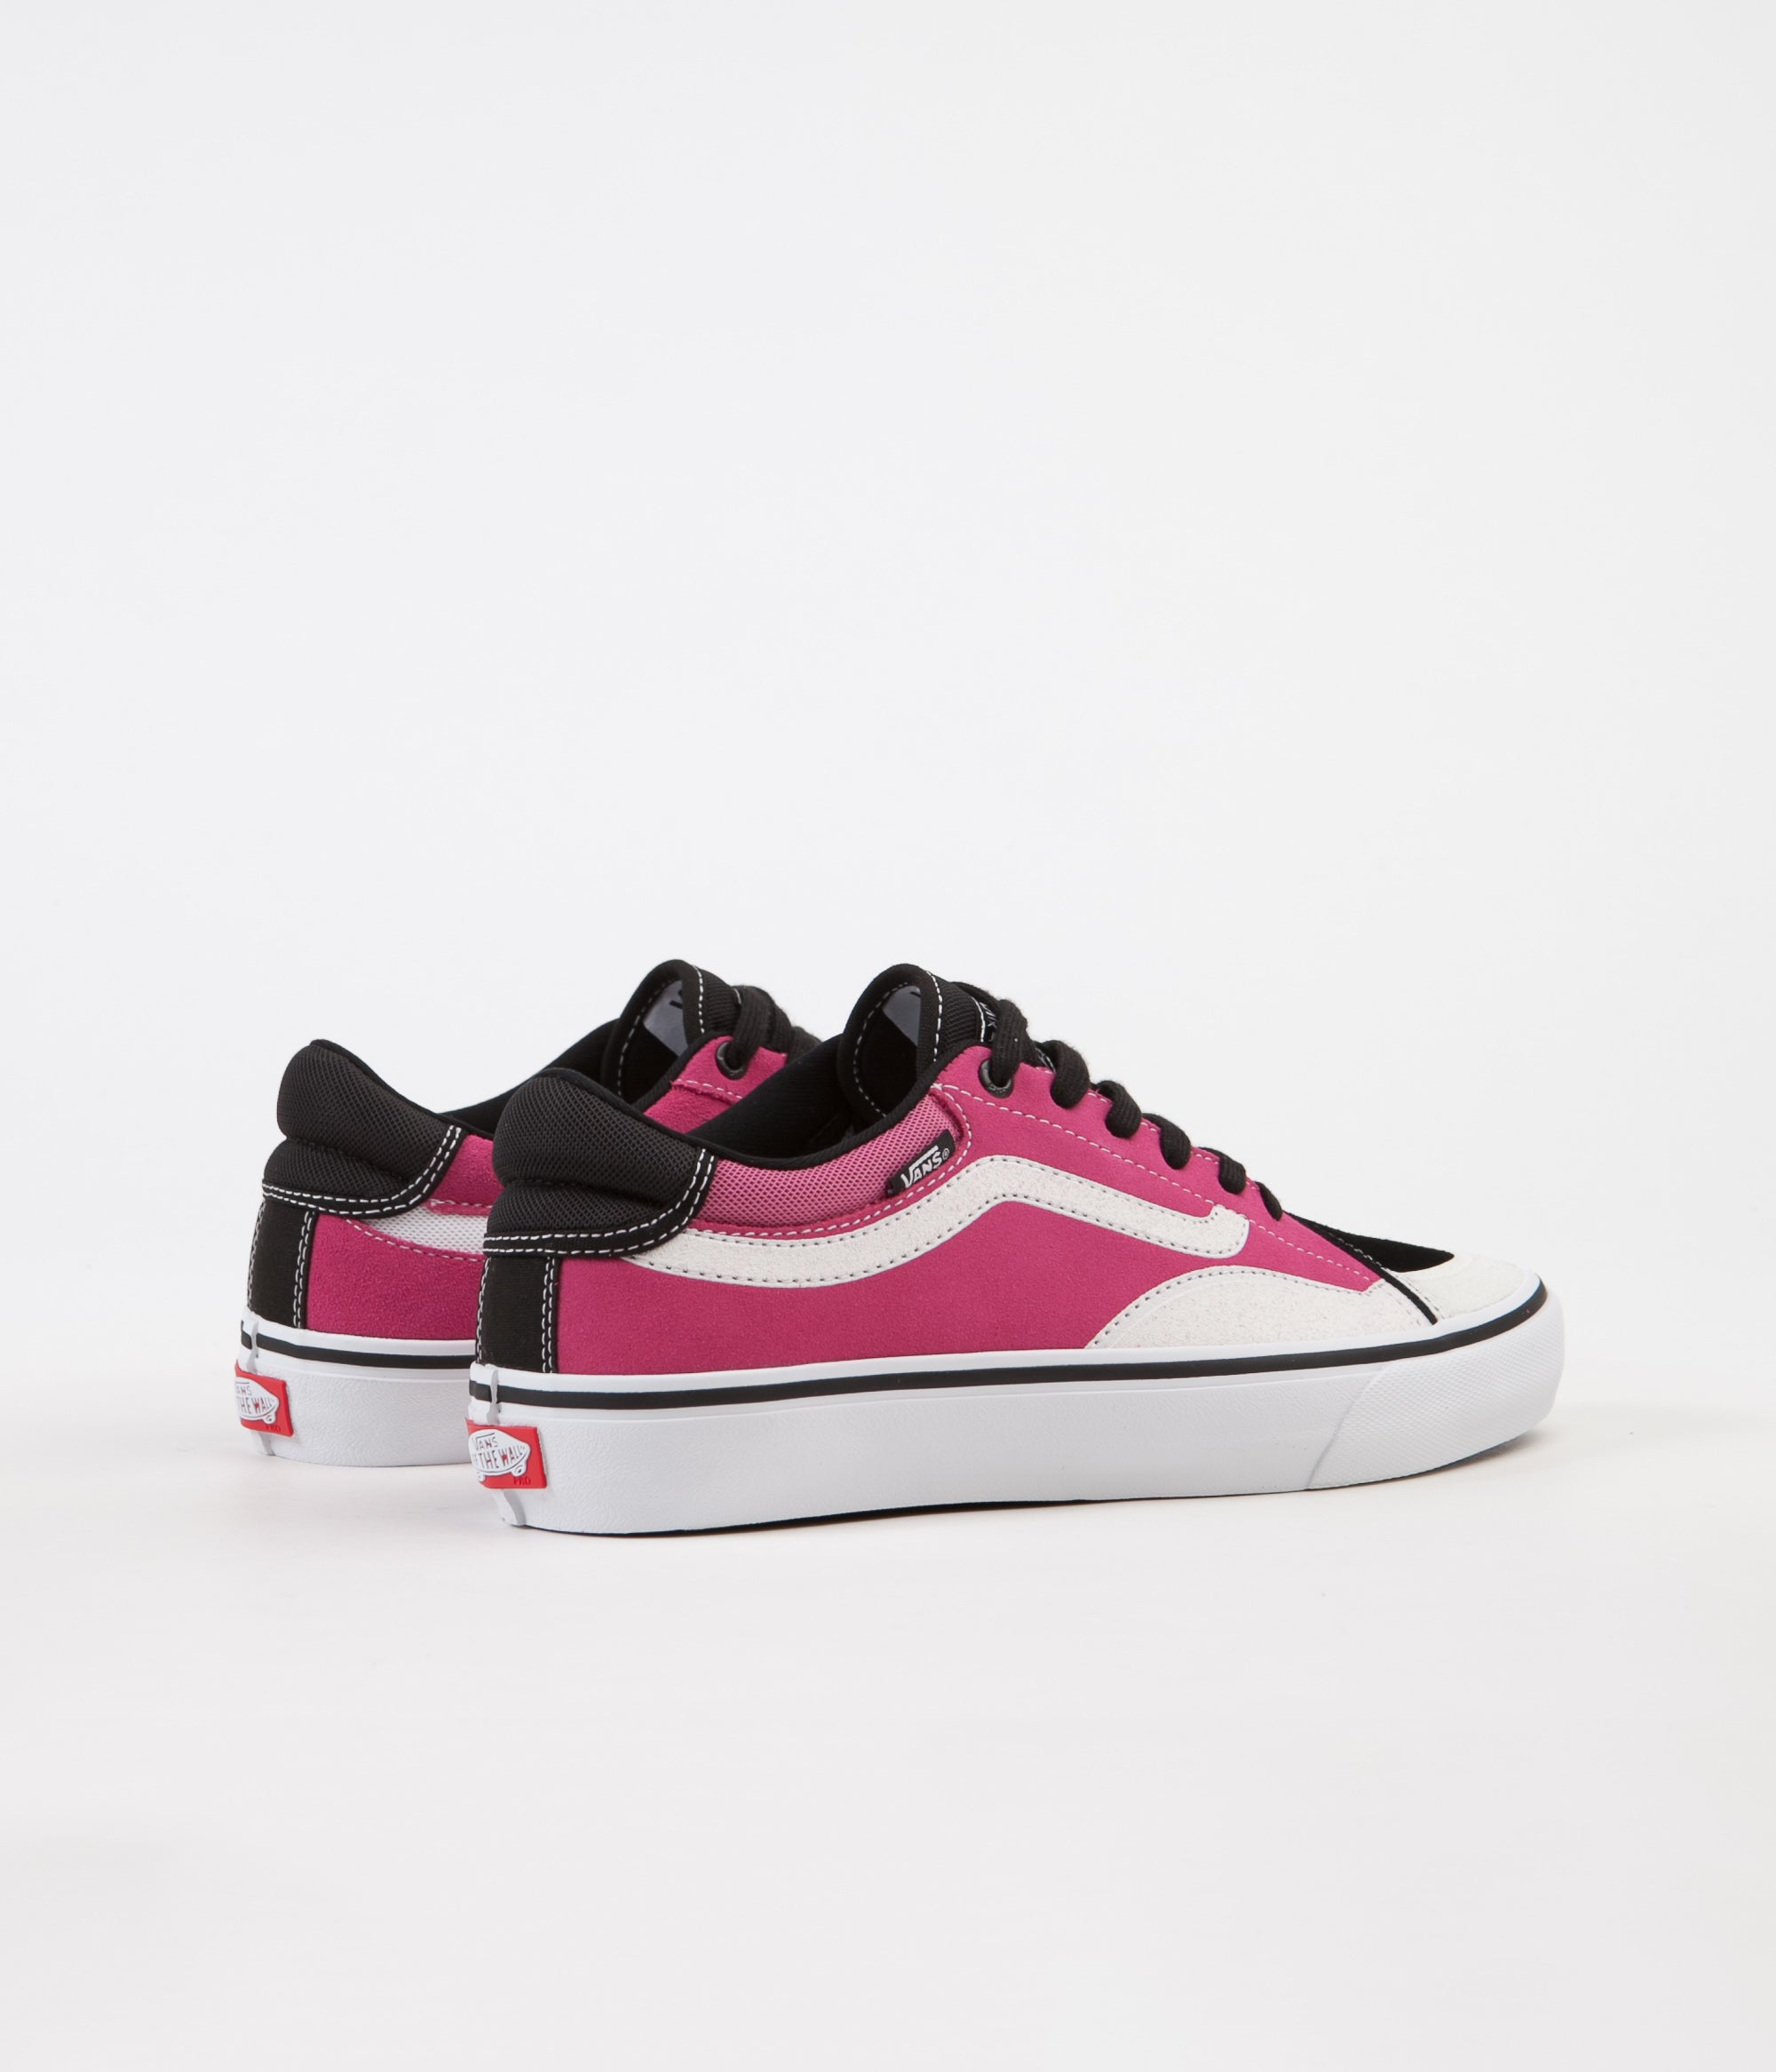 Vans TNT Advanced Prototype Shoes - Black / Magenta / White